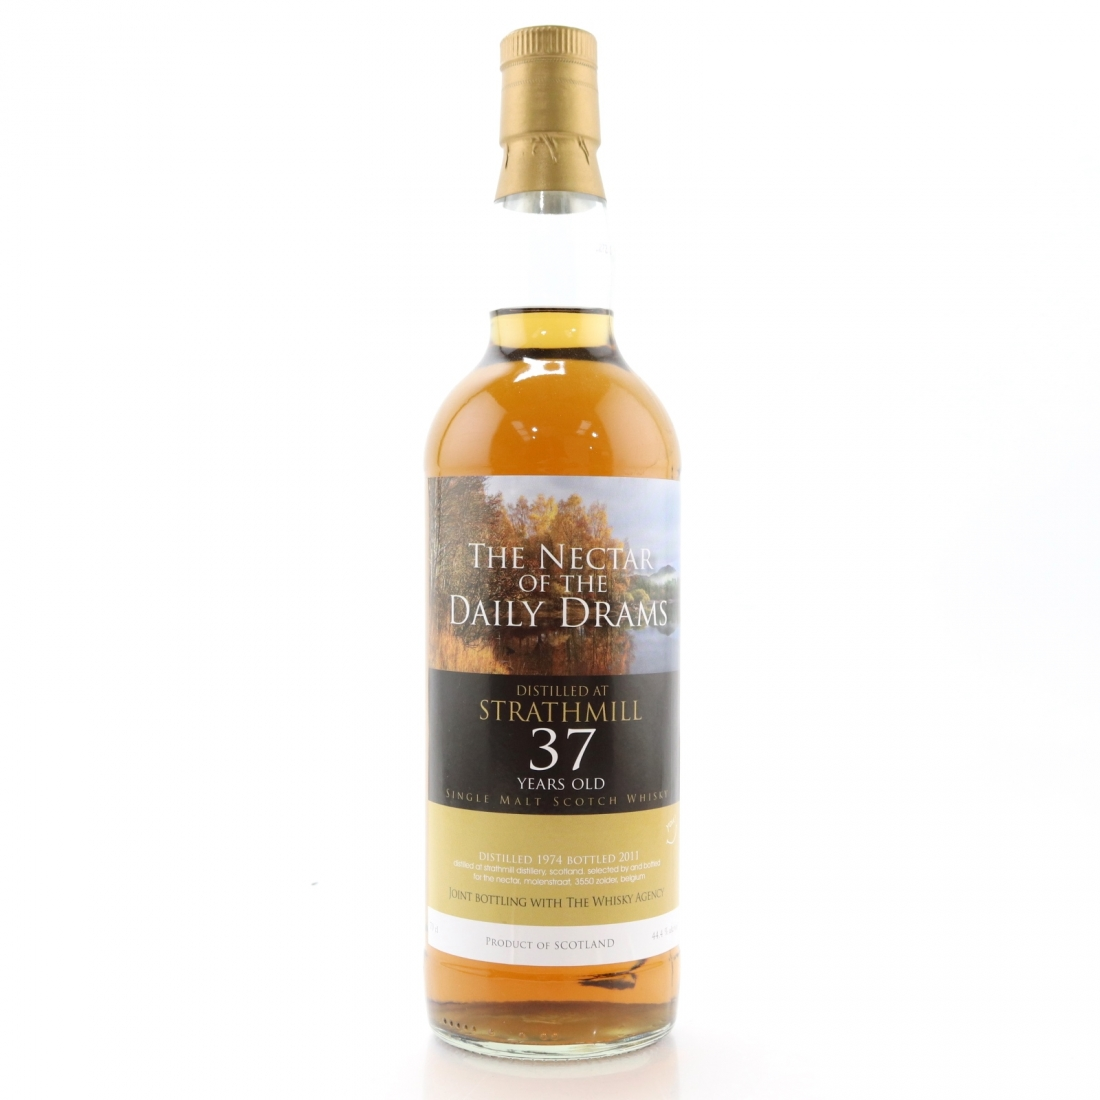 Strathmill 1974 Whisky Agency 37 Year Old / Nectar